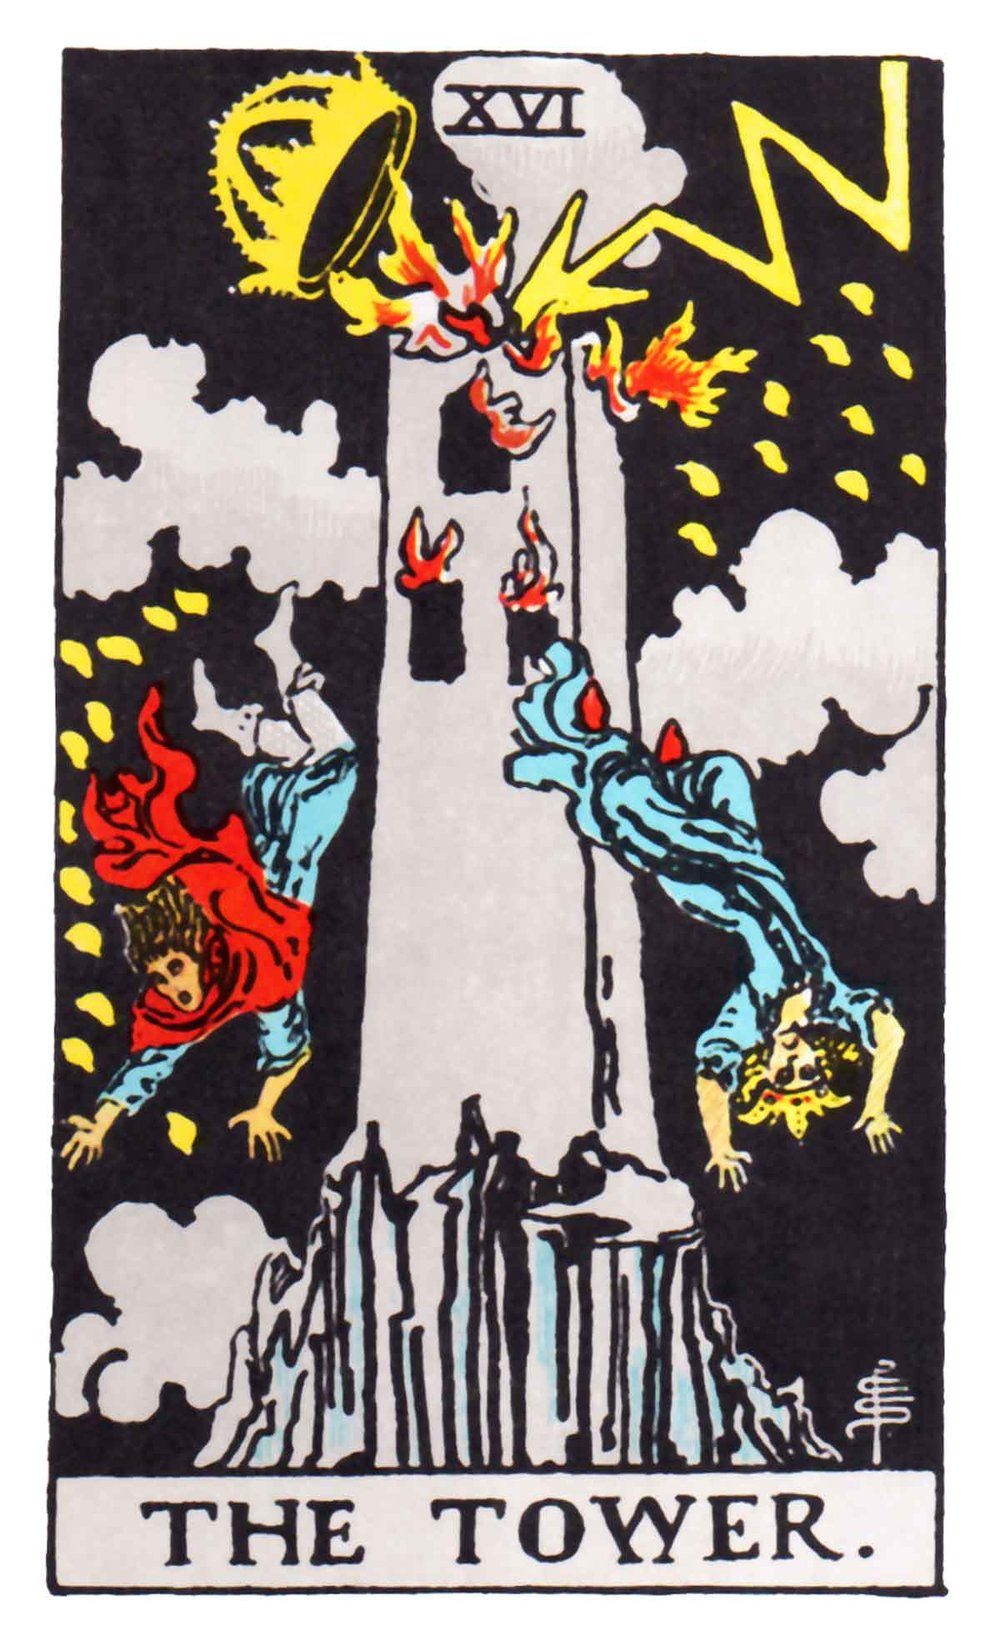 The Tower  card of the Tarot deck is commonly interpreted as meaning danger, crisis, destruction, and liberation. It is associated with sudden unforseen change.